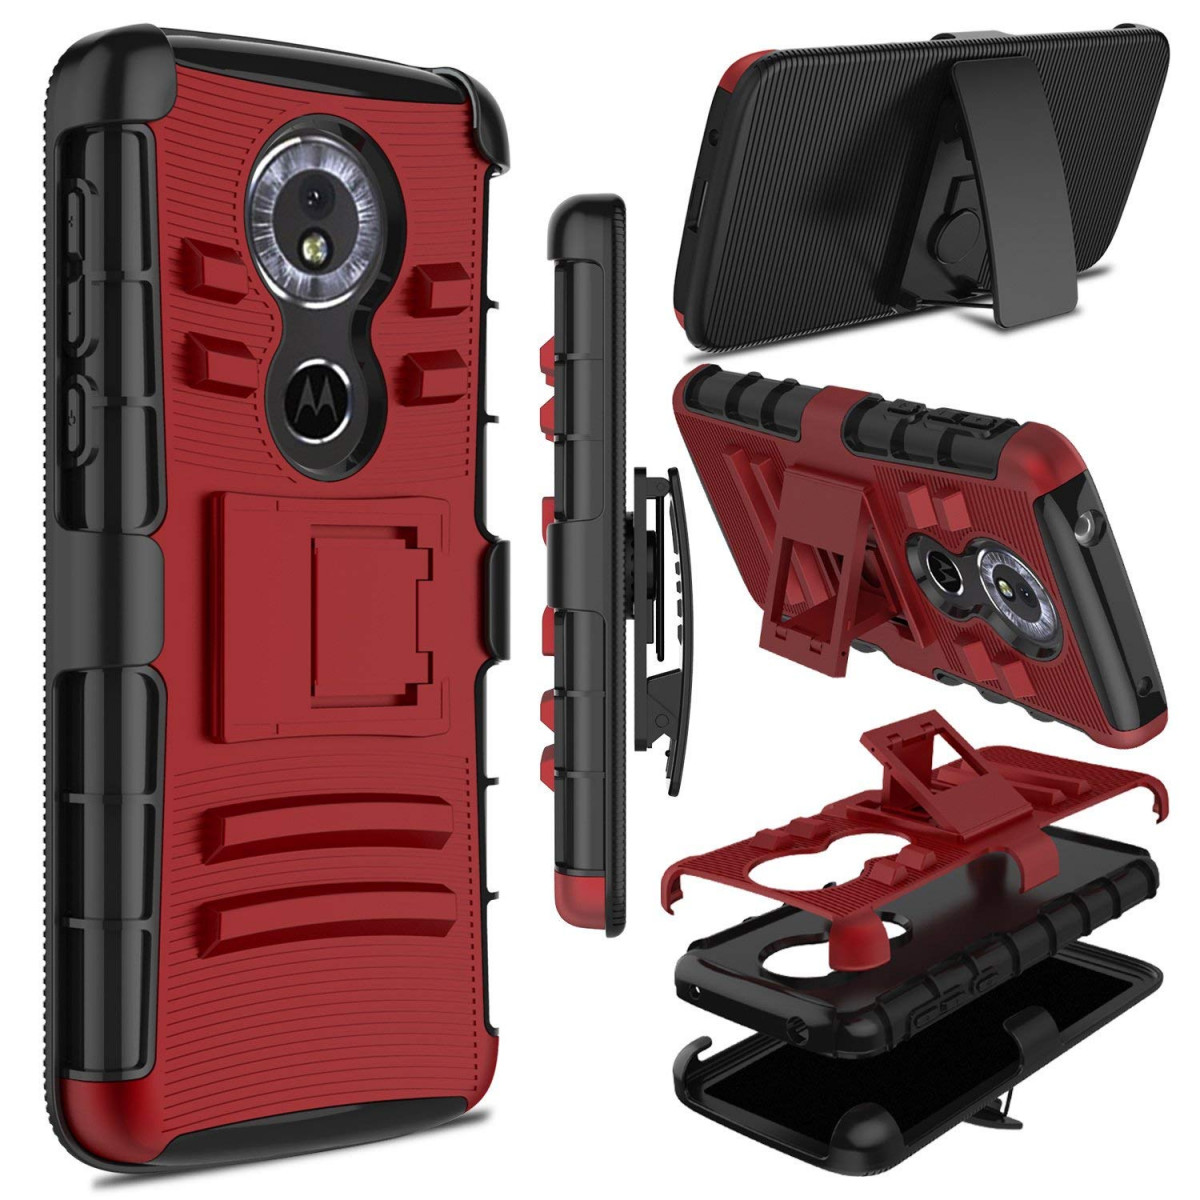 separation shoes 64138 9860b Moto G6 Play Case, Moto E5 Case, Zenic Heavy Duty Shockproof Full-Body  Protective Hybrid Case Cover Swivel Belt Clip Kickstand Motorola Moto G6  Play ...